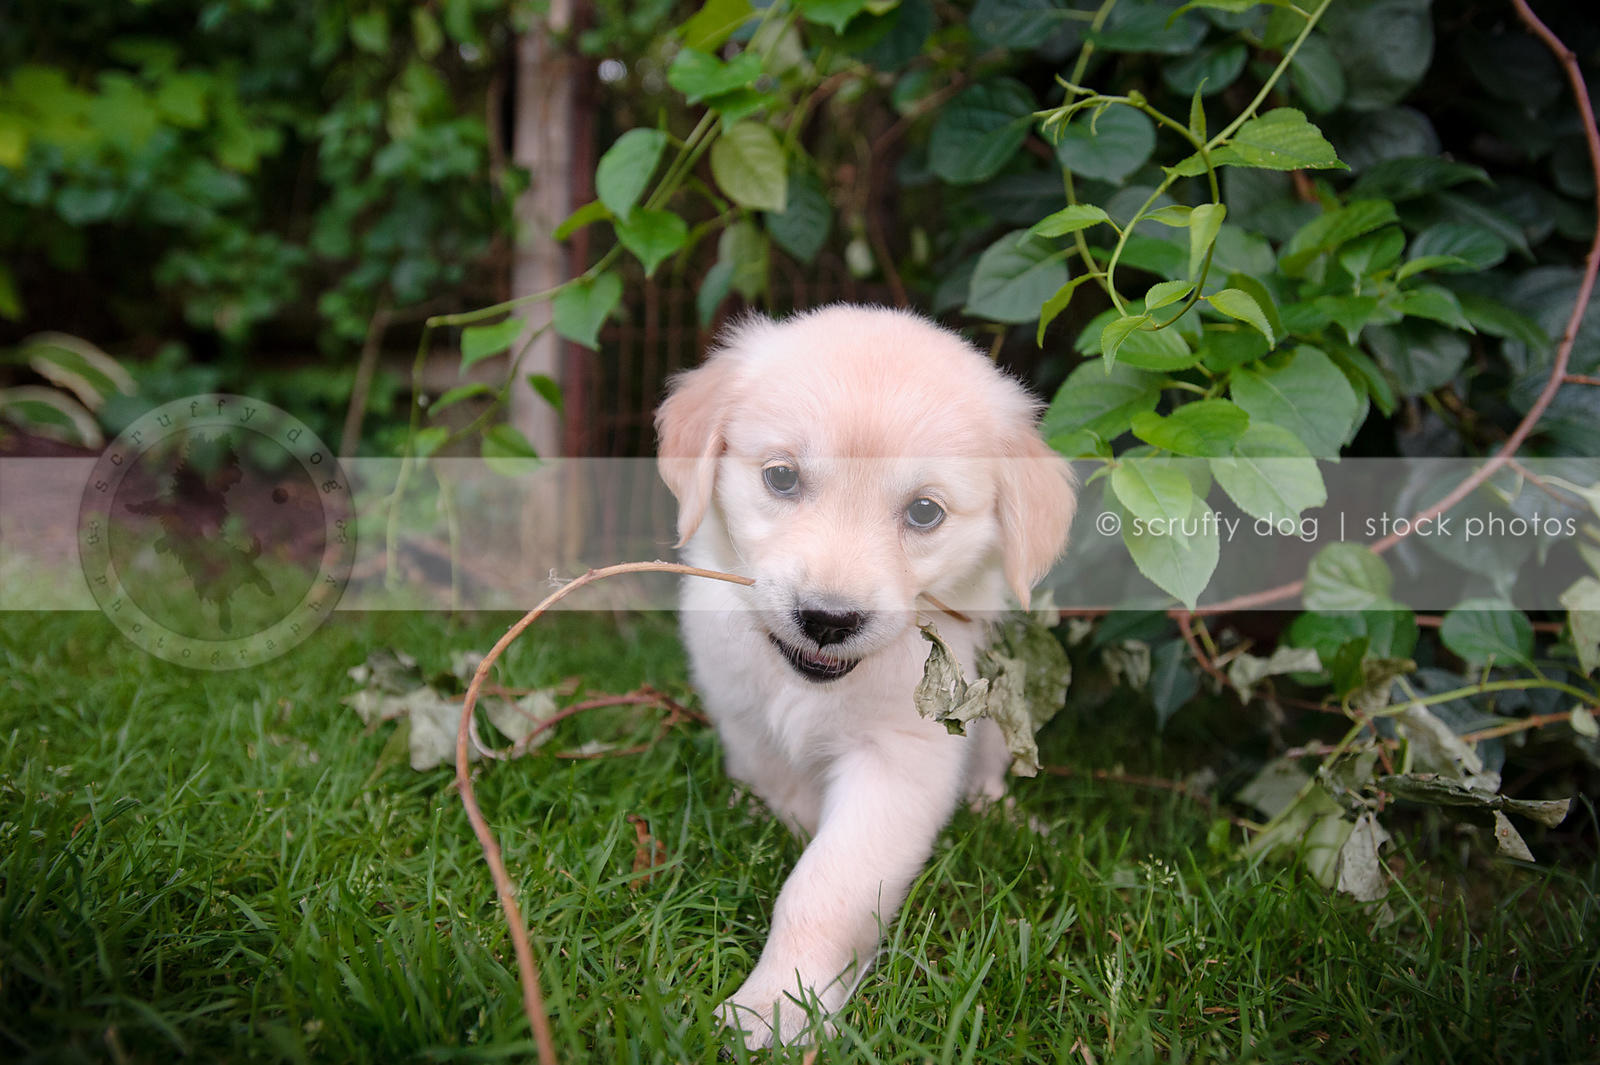 Stock Photo cute golden retriever puppy chewing twig in